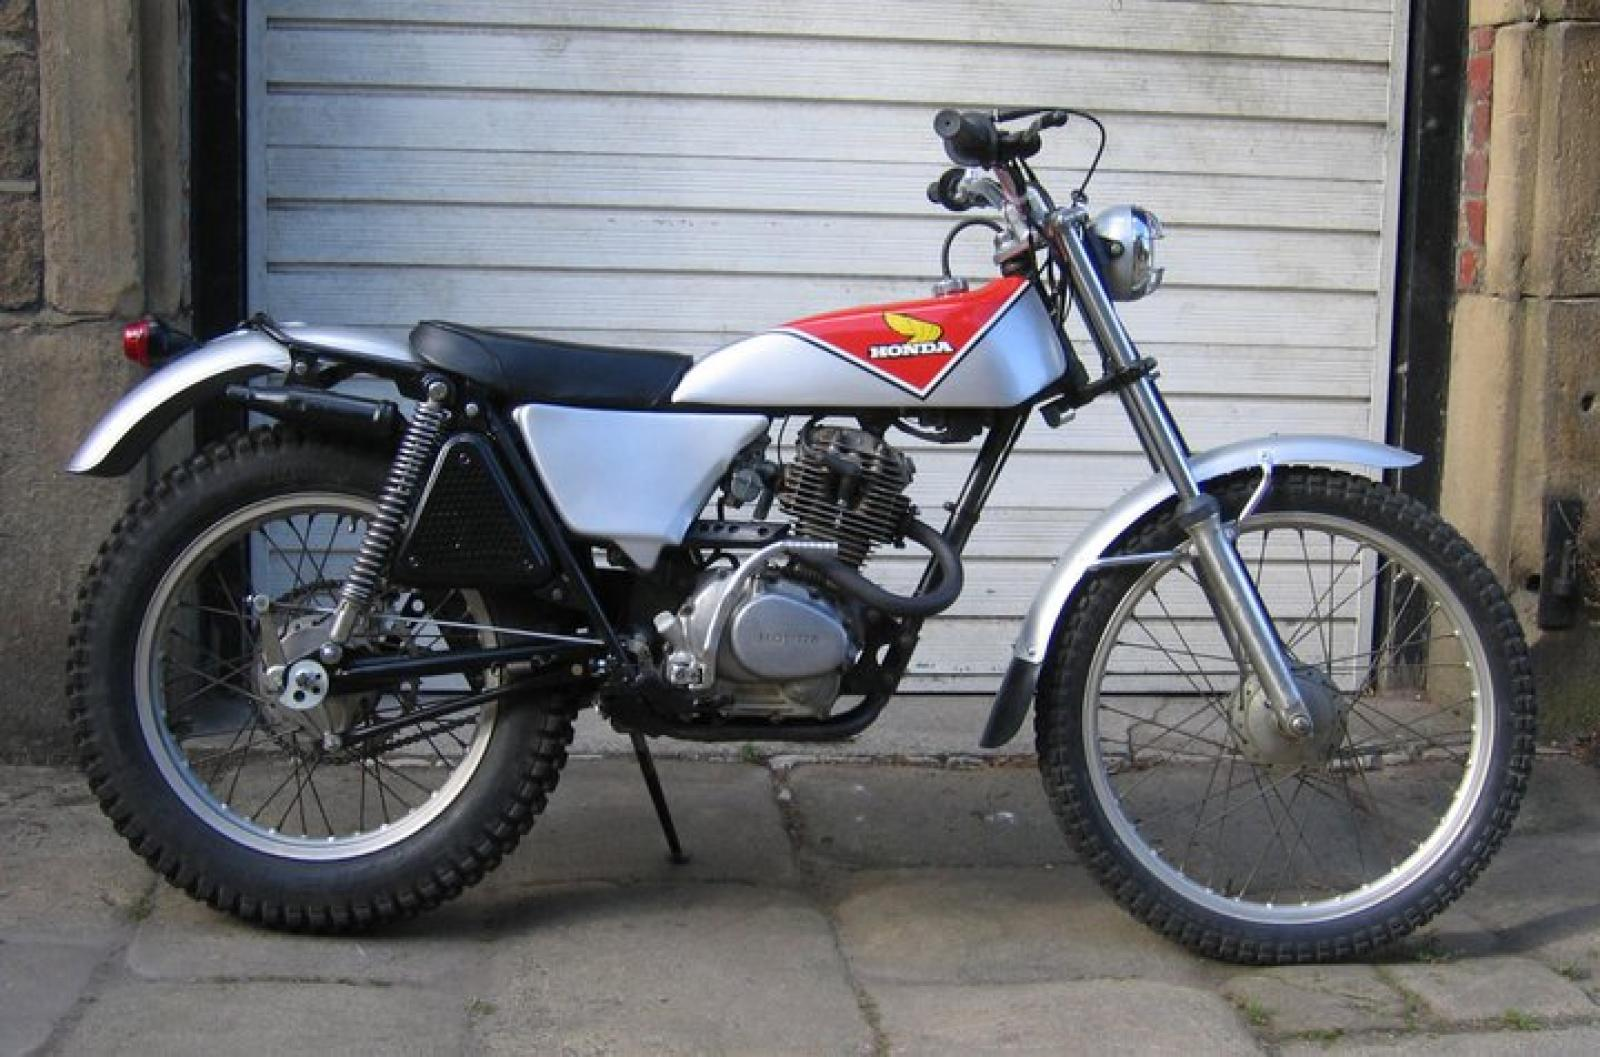 Honda Tl125 Ihatovo 1970 125 Dirt Bike 800 1024 1280 1600 Origin